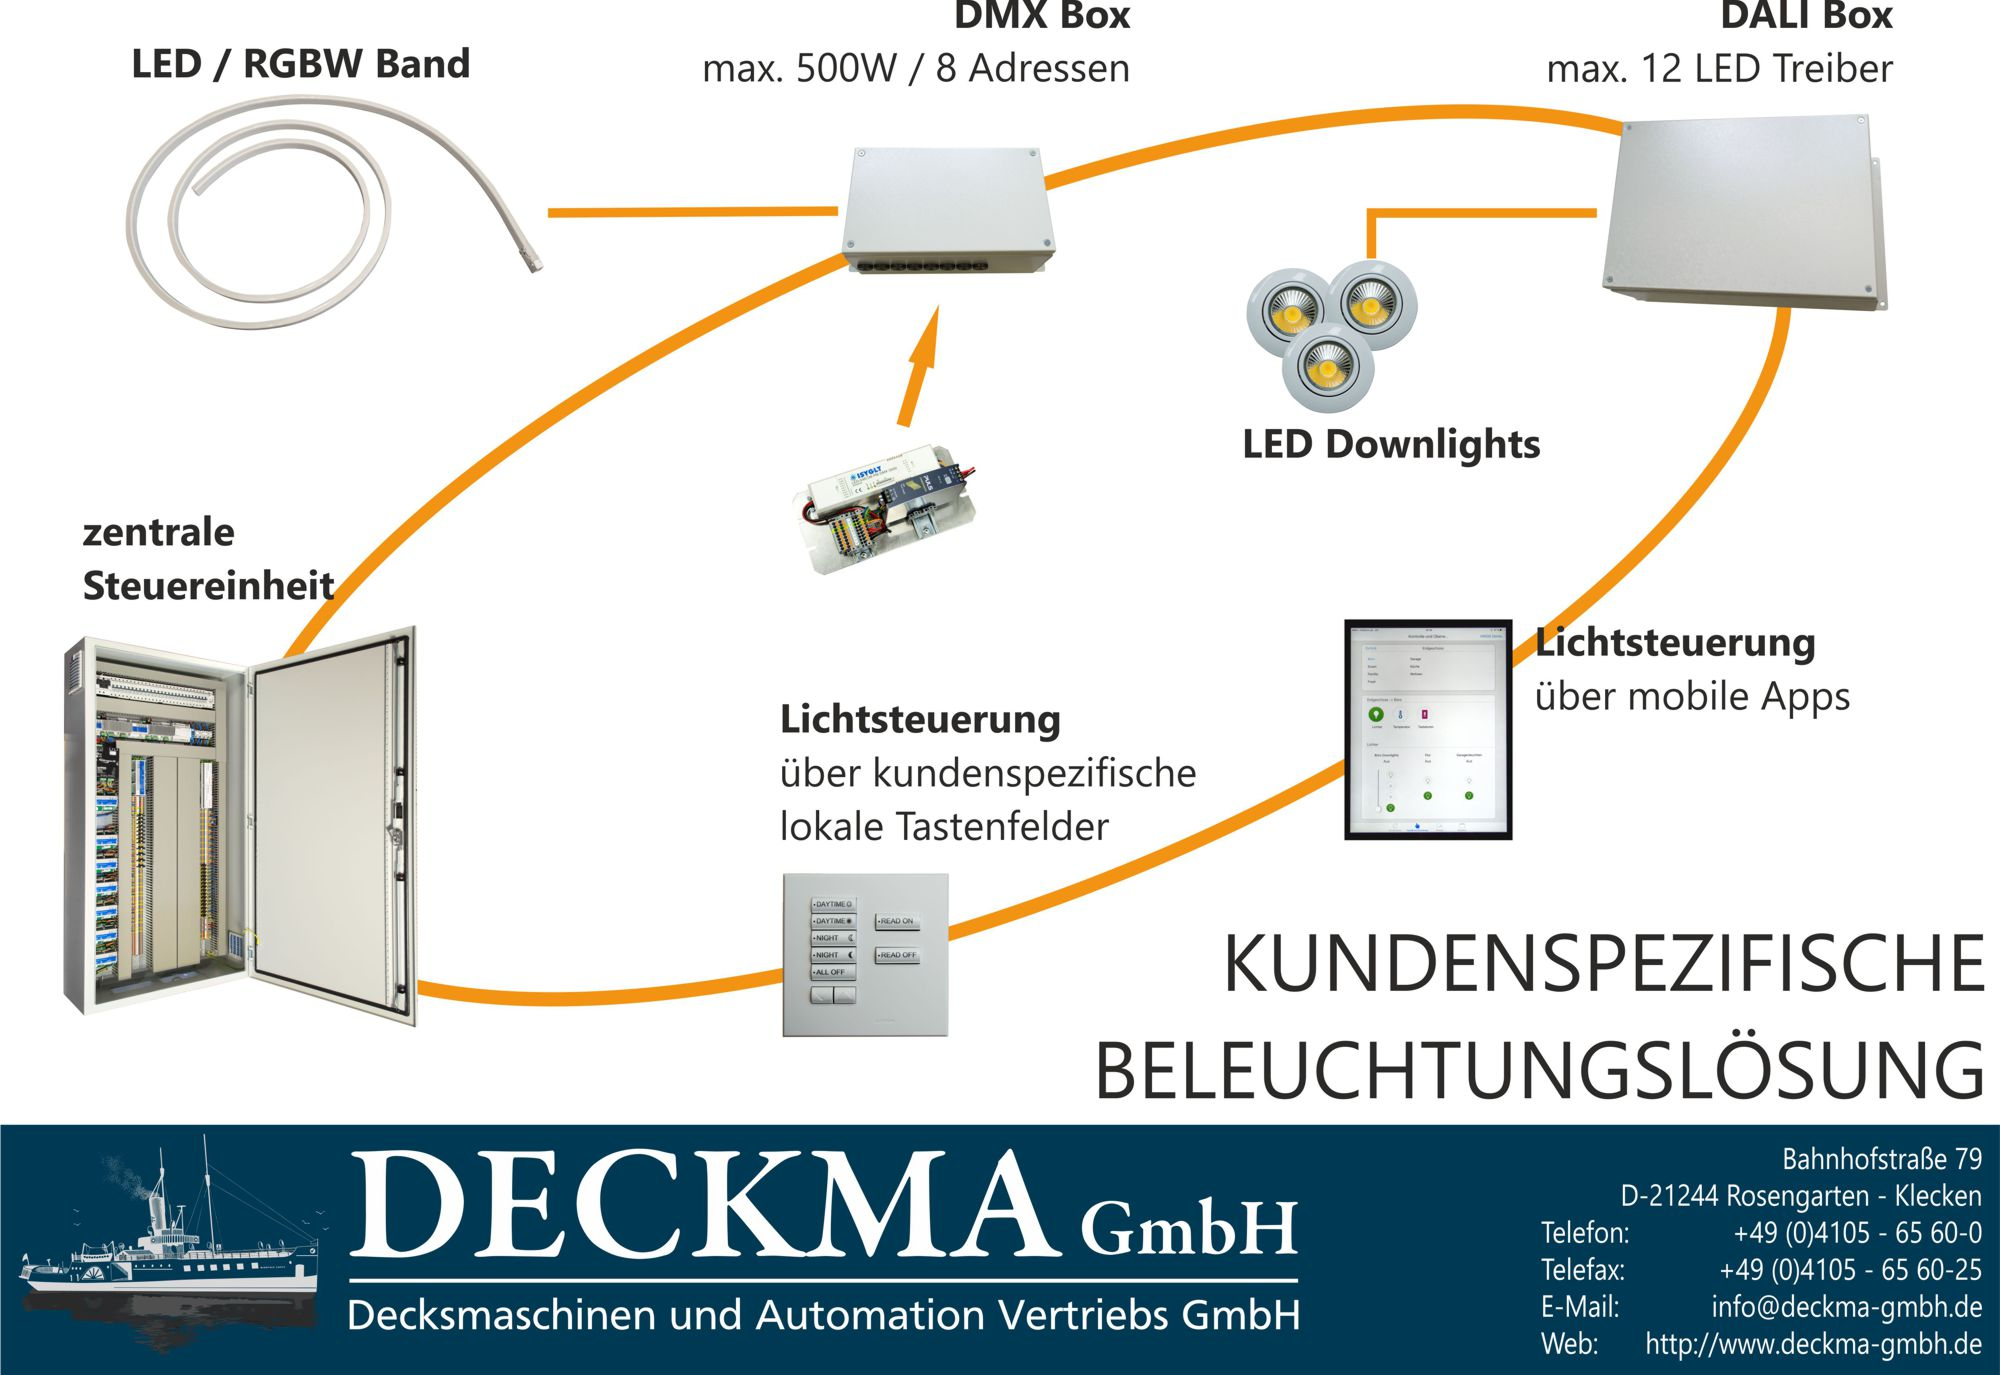 Deckma GmbH - Project engineering and manufacture of dimmer system